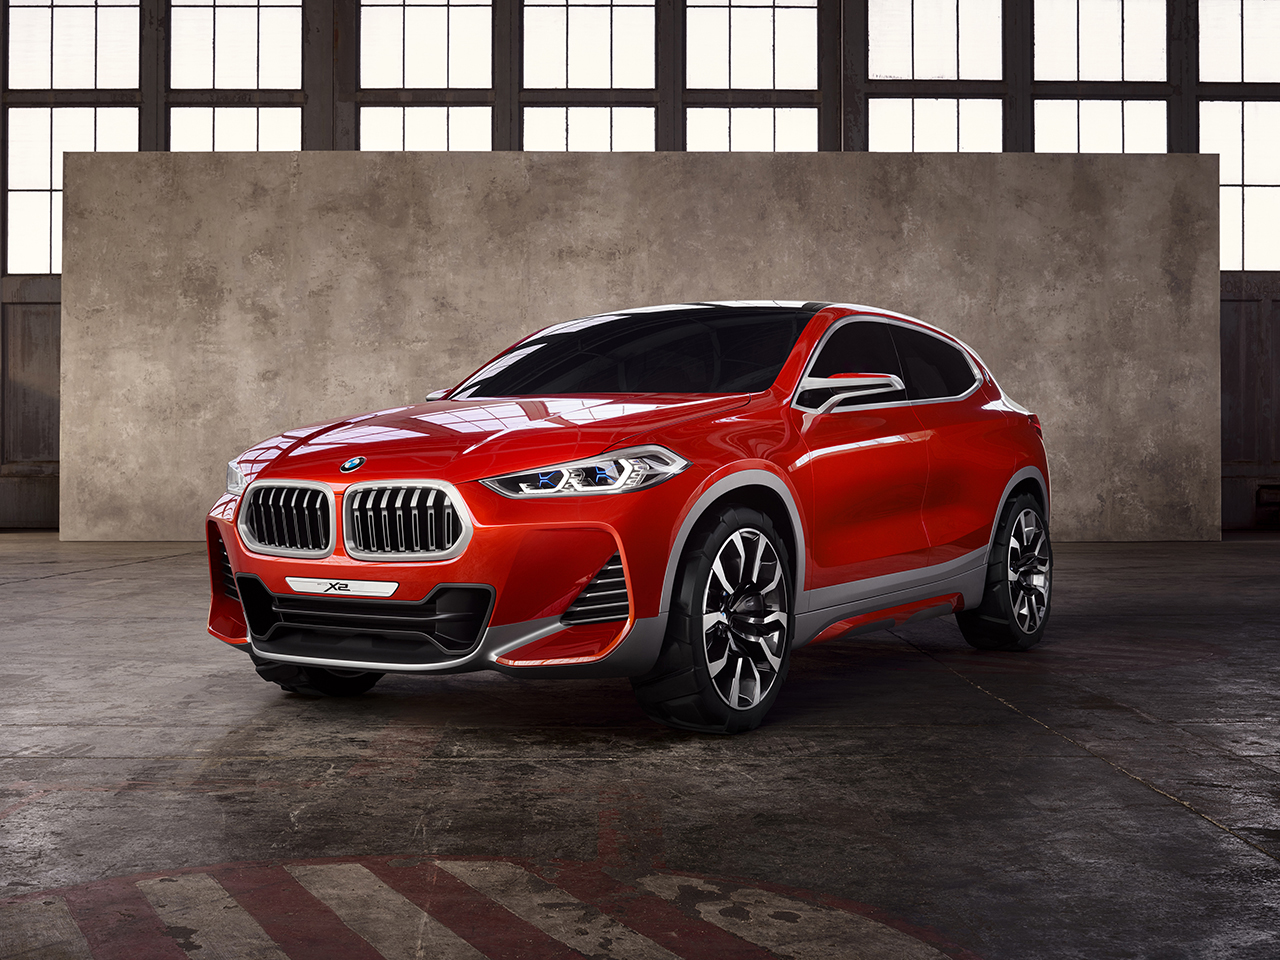 2016 Paris Preview - BMW X2 Concept